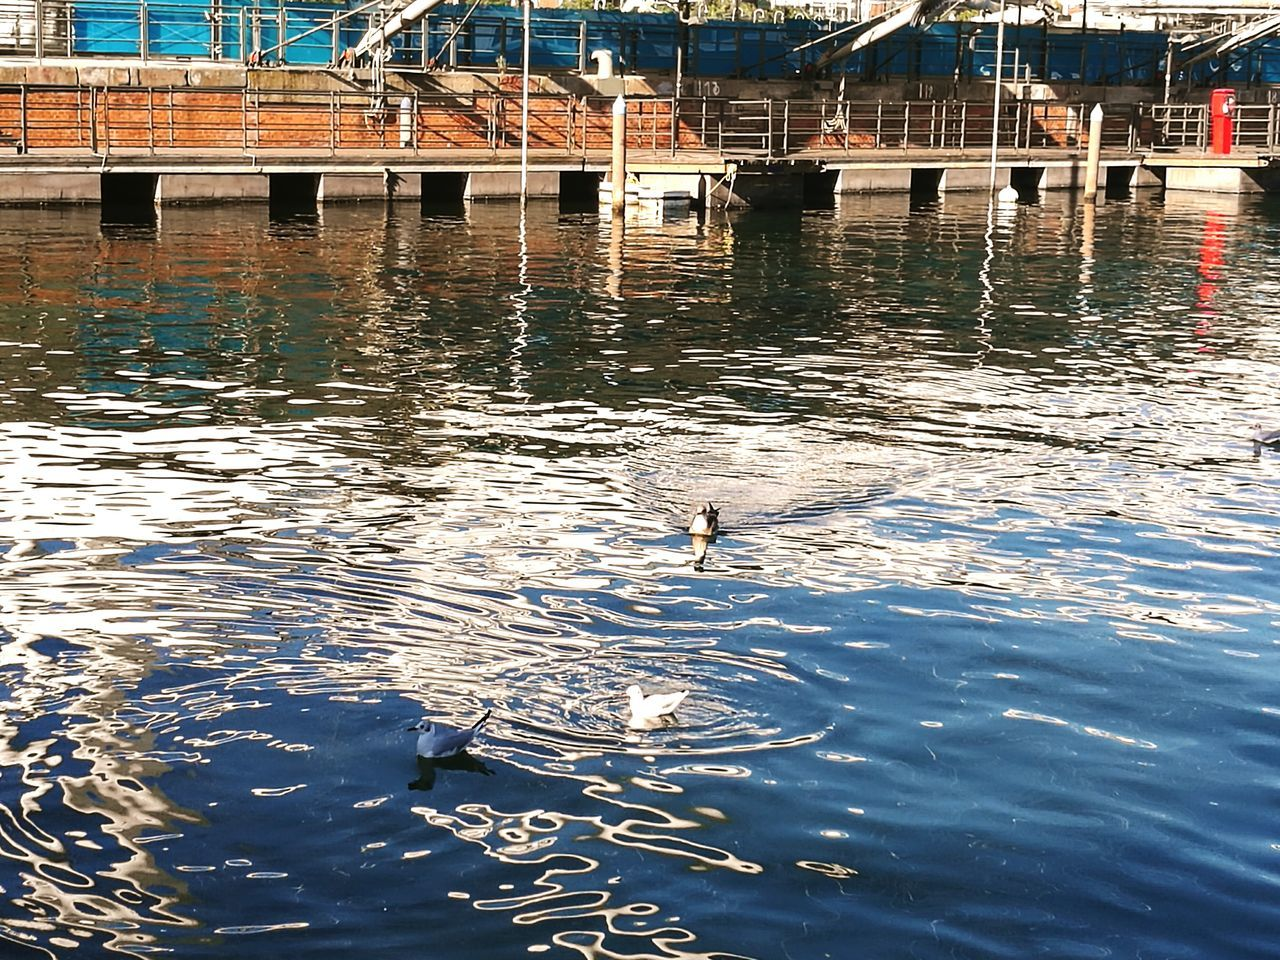 water, animal themes, bird, animals in the wild, waterfront, reflection, day, animal wildlife, one animal, rippled, no people, nature, architecture, built structure, outdoors, lake, building exterior